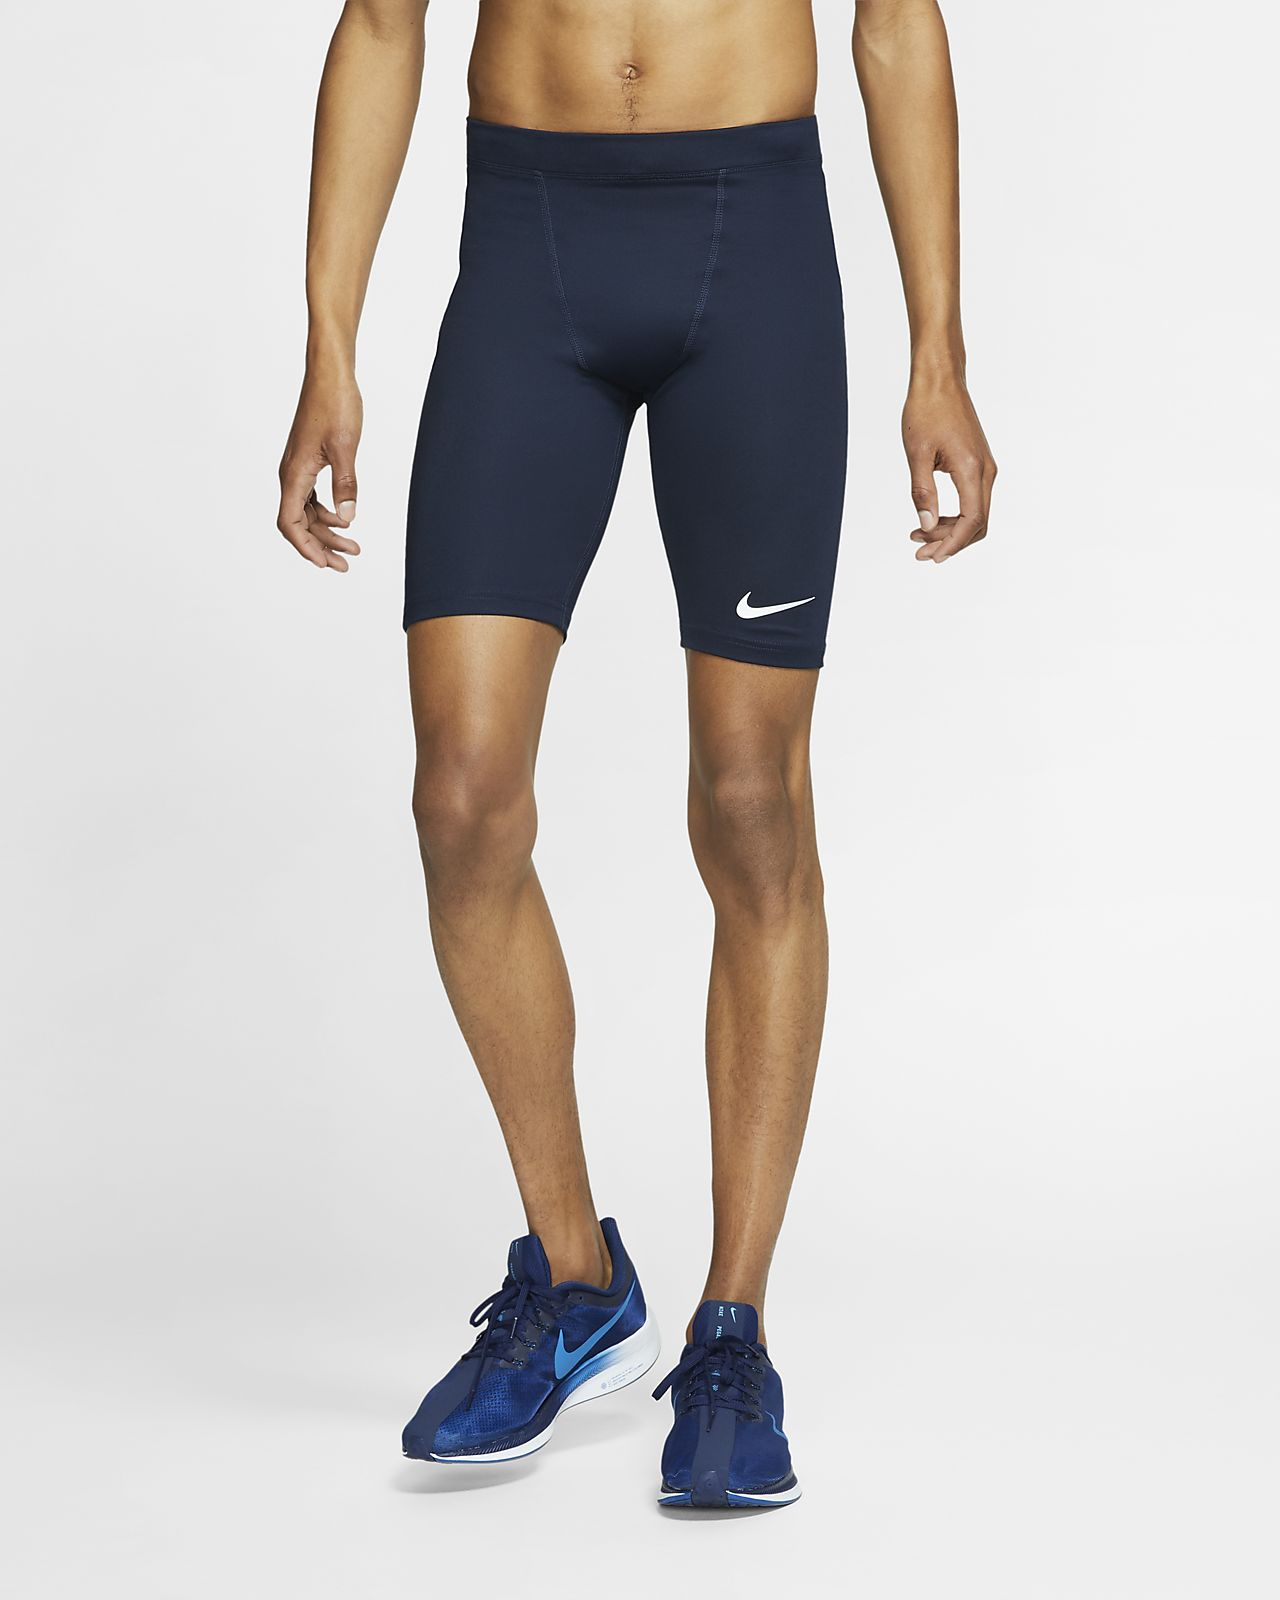 Nike Power Malles de running - Home